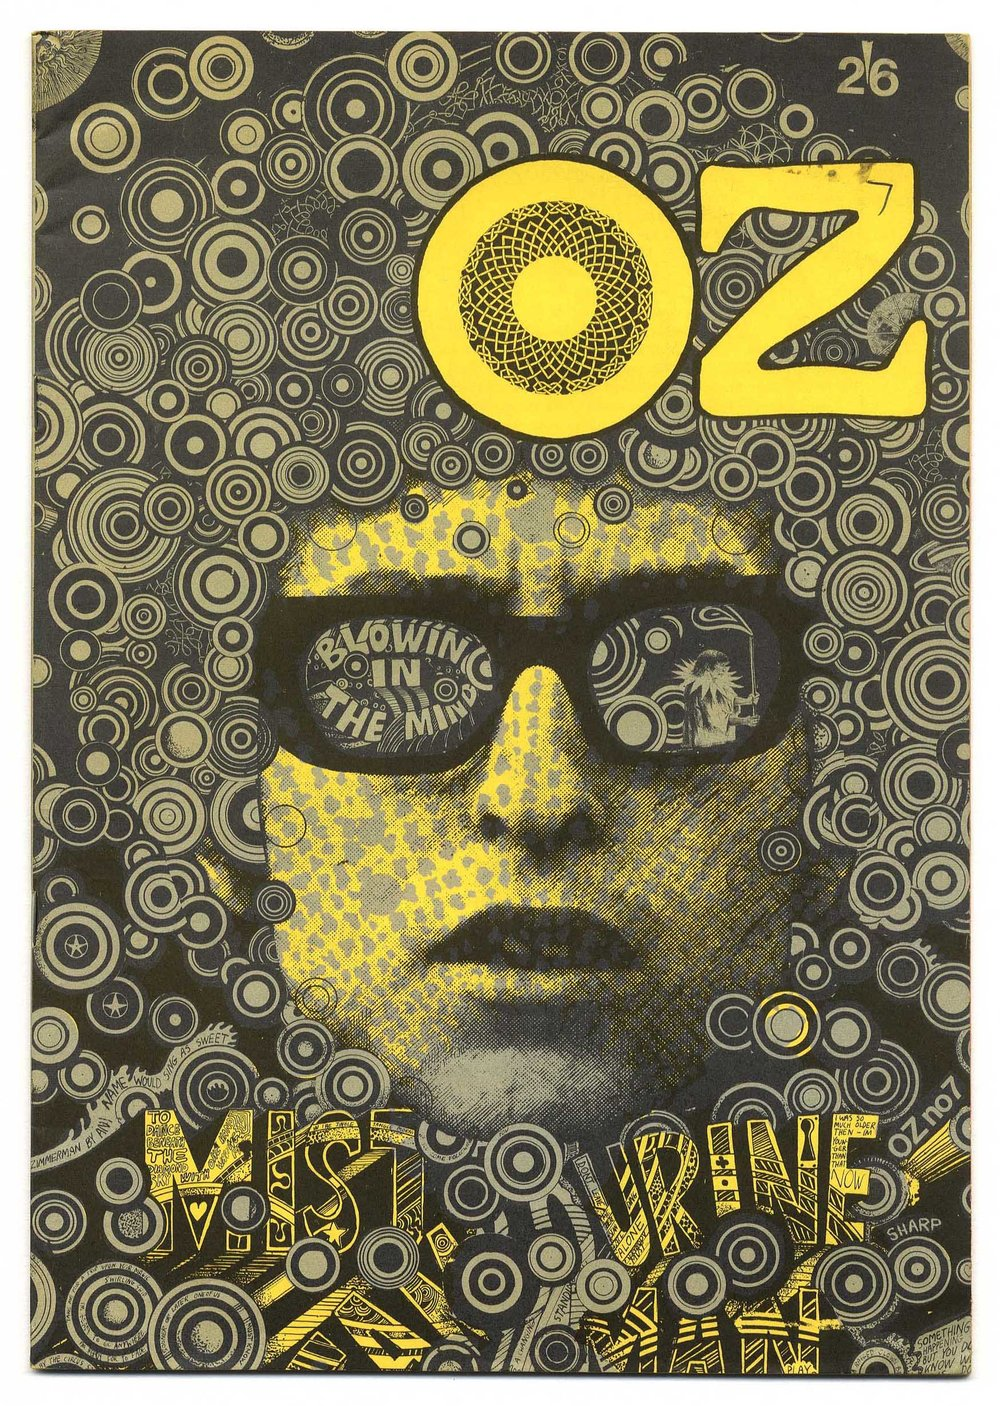 oz-magazine-no-7-oct-nov-1967-martin-sharp-bob-dylan-cover-10487-p.jpg